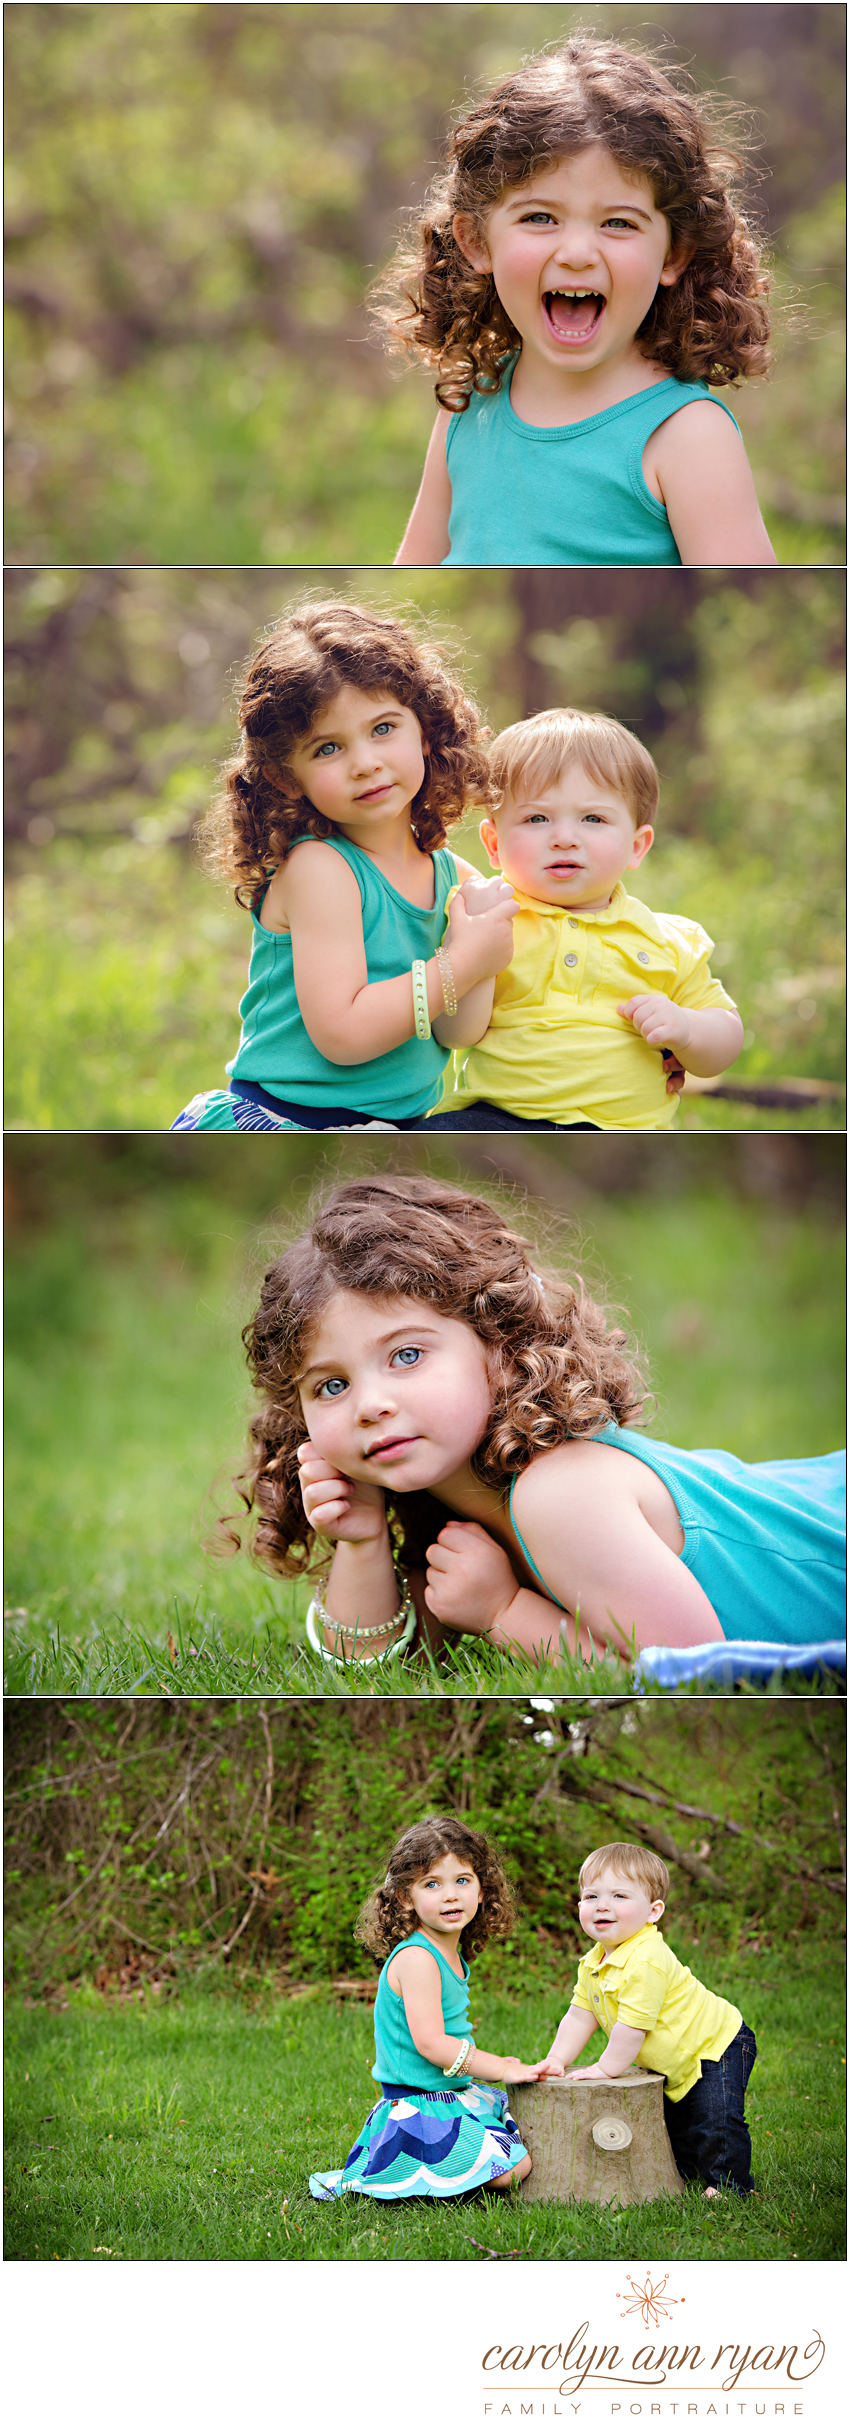 Carolyn Ann Ryan Photography, child and family photographer